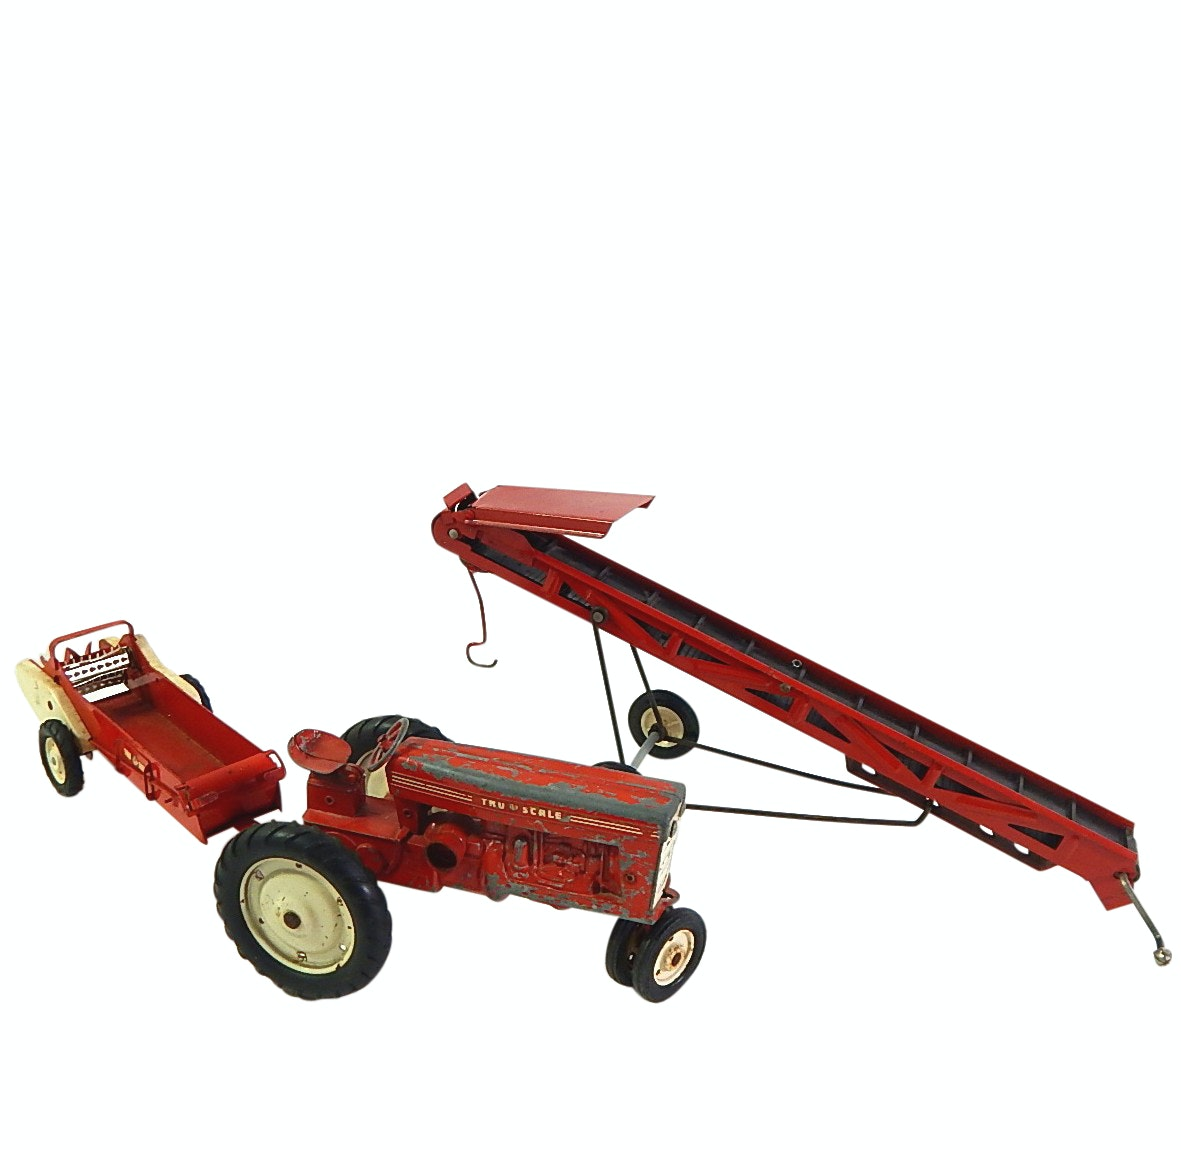 Vintage Die Cast Tru-Scale Farming Equipment with a Tractor Pull-along Conveyor